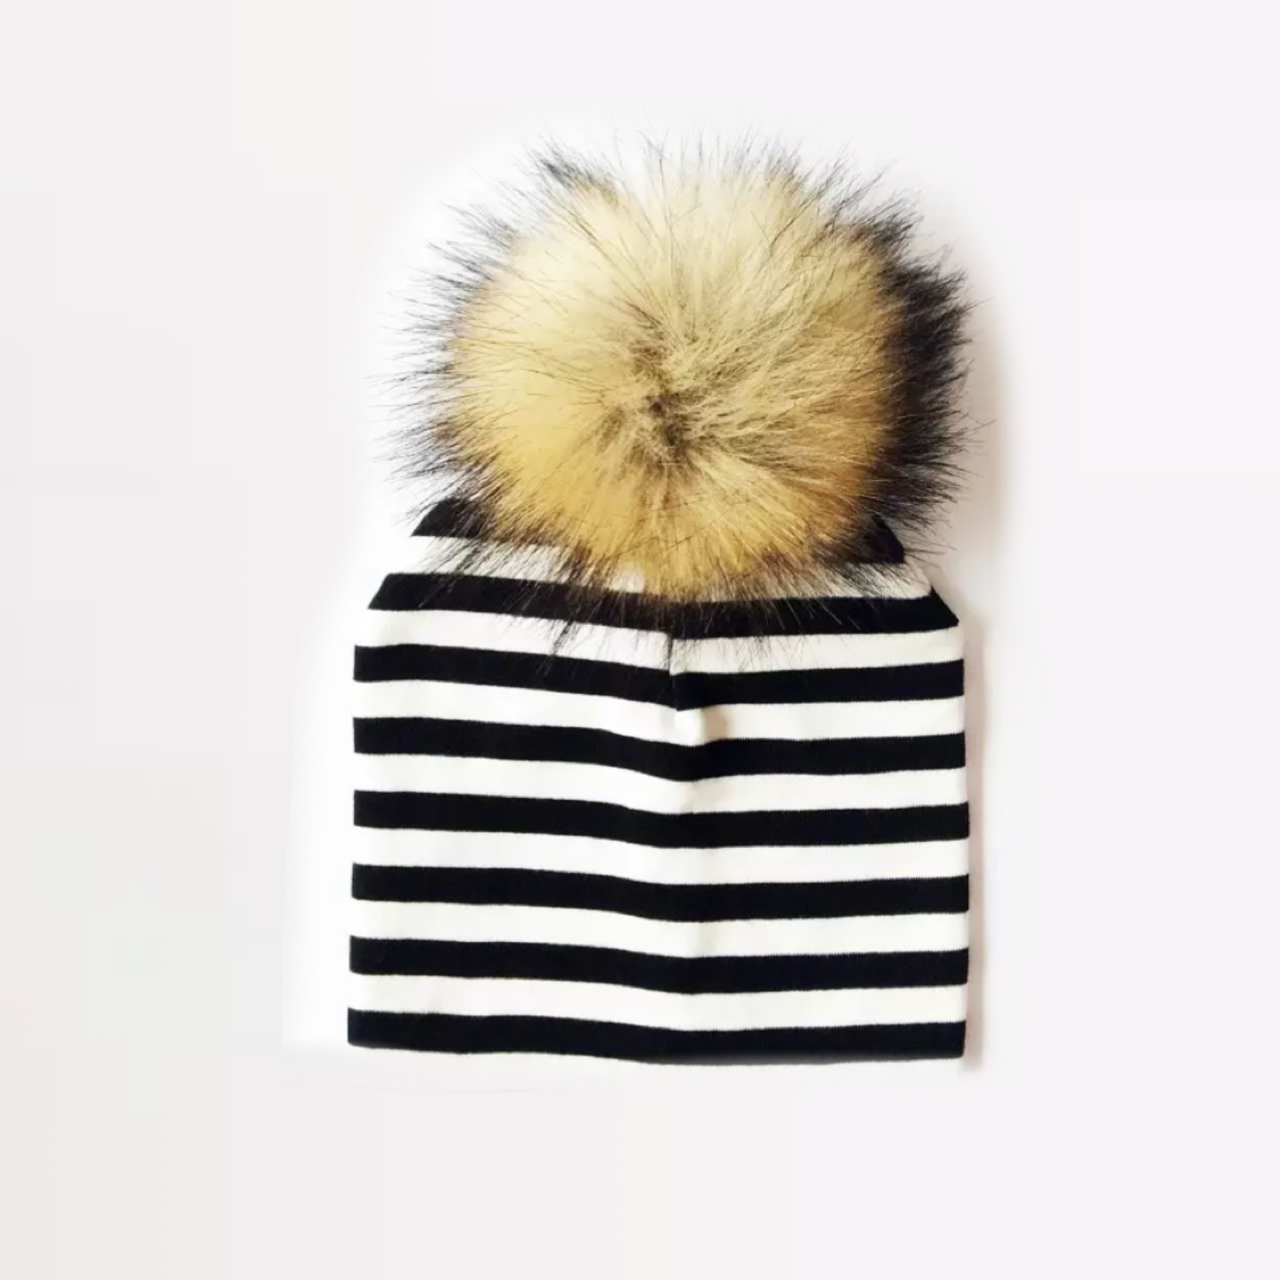 Black and White Stripe Pom Pom Beanie Hat